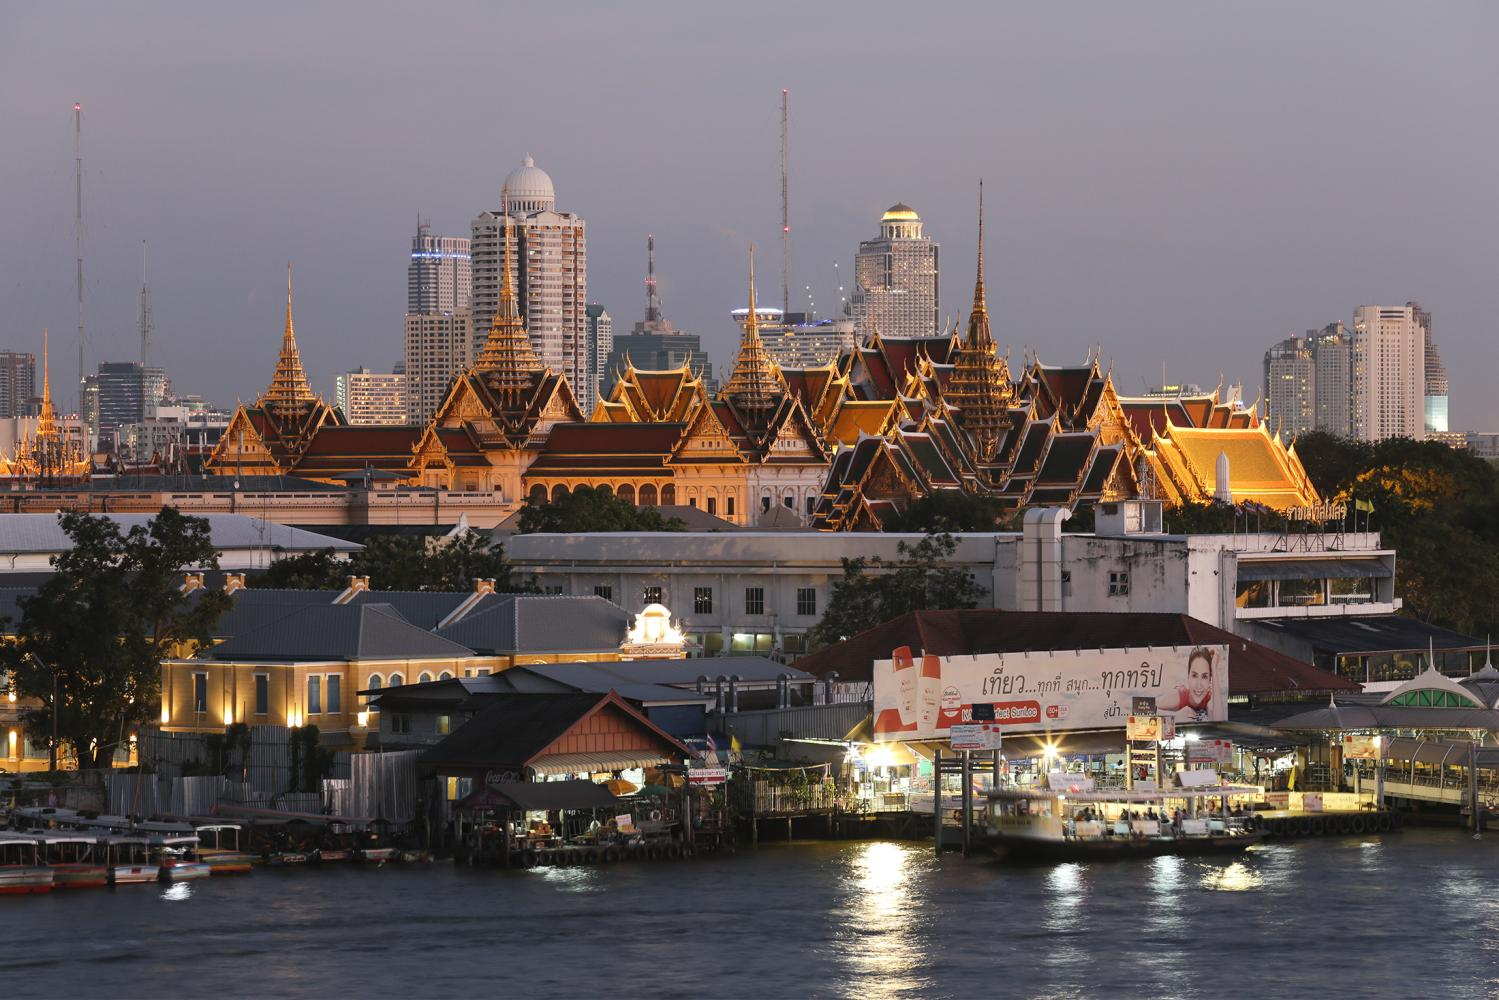 Majestic palace: A view of the two-century-old Grand Palace and its surrounding neighbourhood. Bangkok was honoured as a Creative City under the Design category in Unesco's Creative Cities Network on Oct 30.